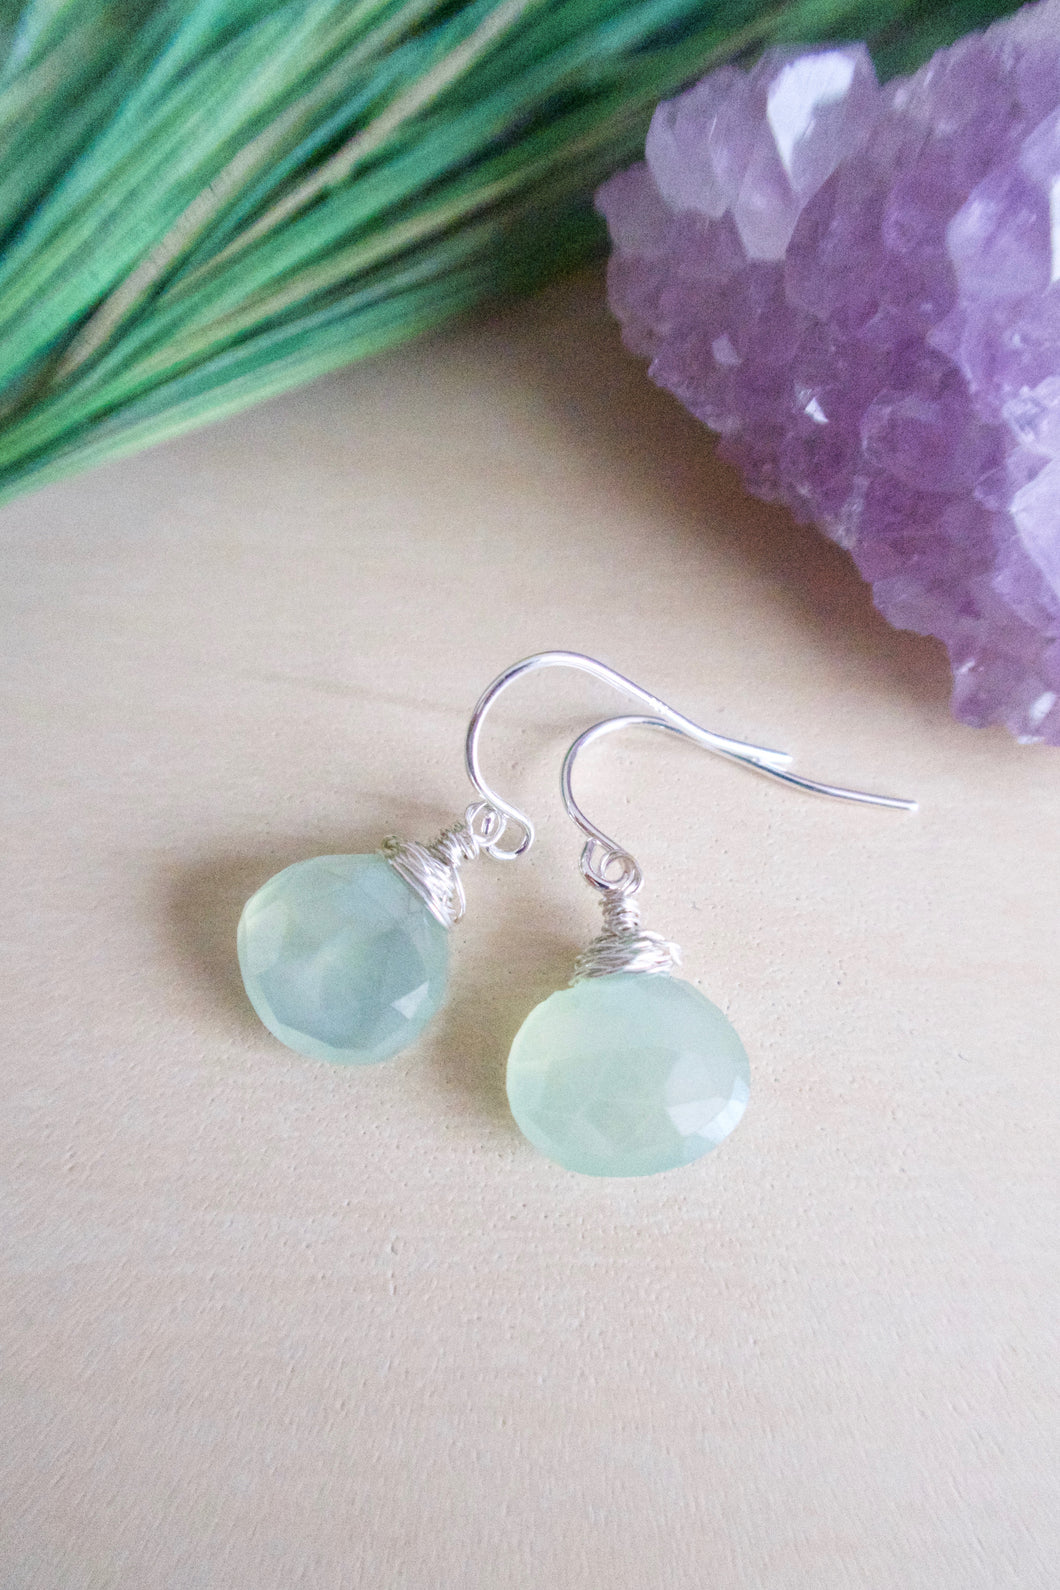 Sea fom green chalcedony gemstone drop earrings wire wrapped in sterling silver wire and suspended from sterling silver ear wires. Pictured on a table